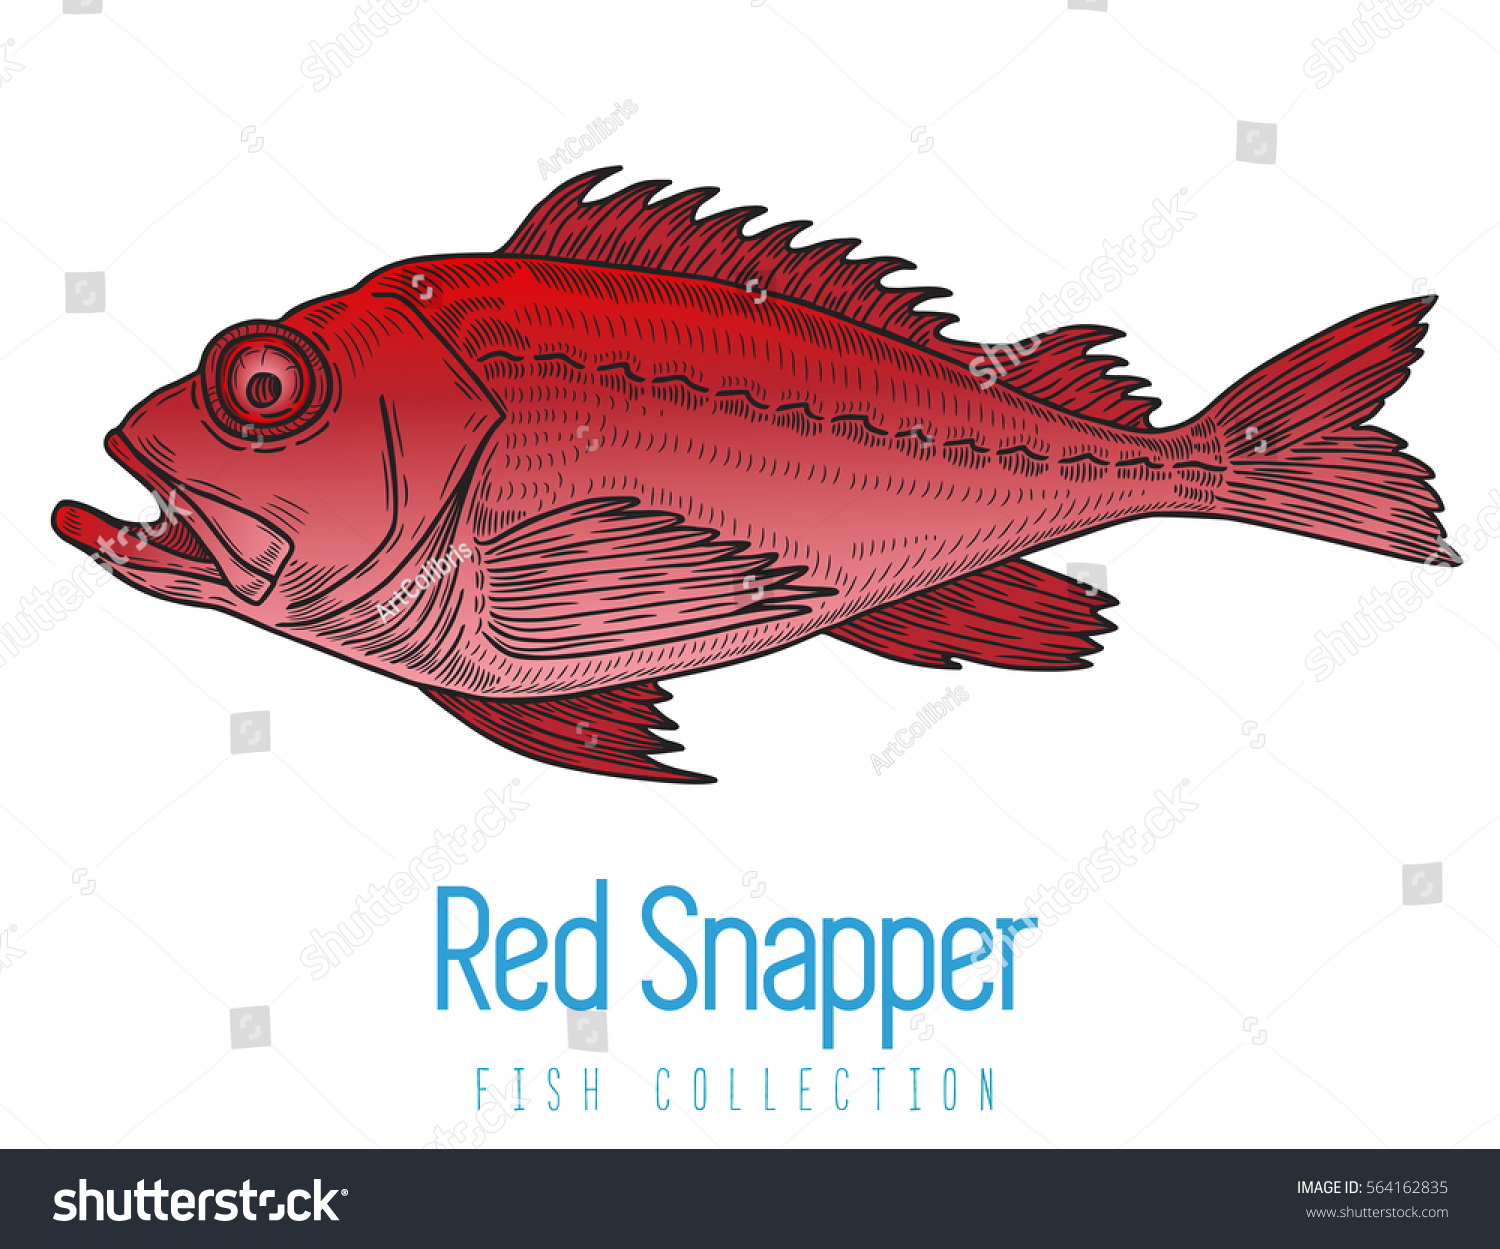 Red Snapper Color Fish Vector Illustration Stock Vector HD (Royalty ...